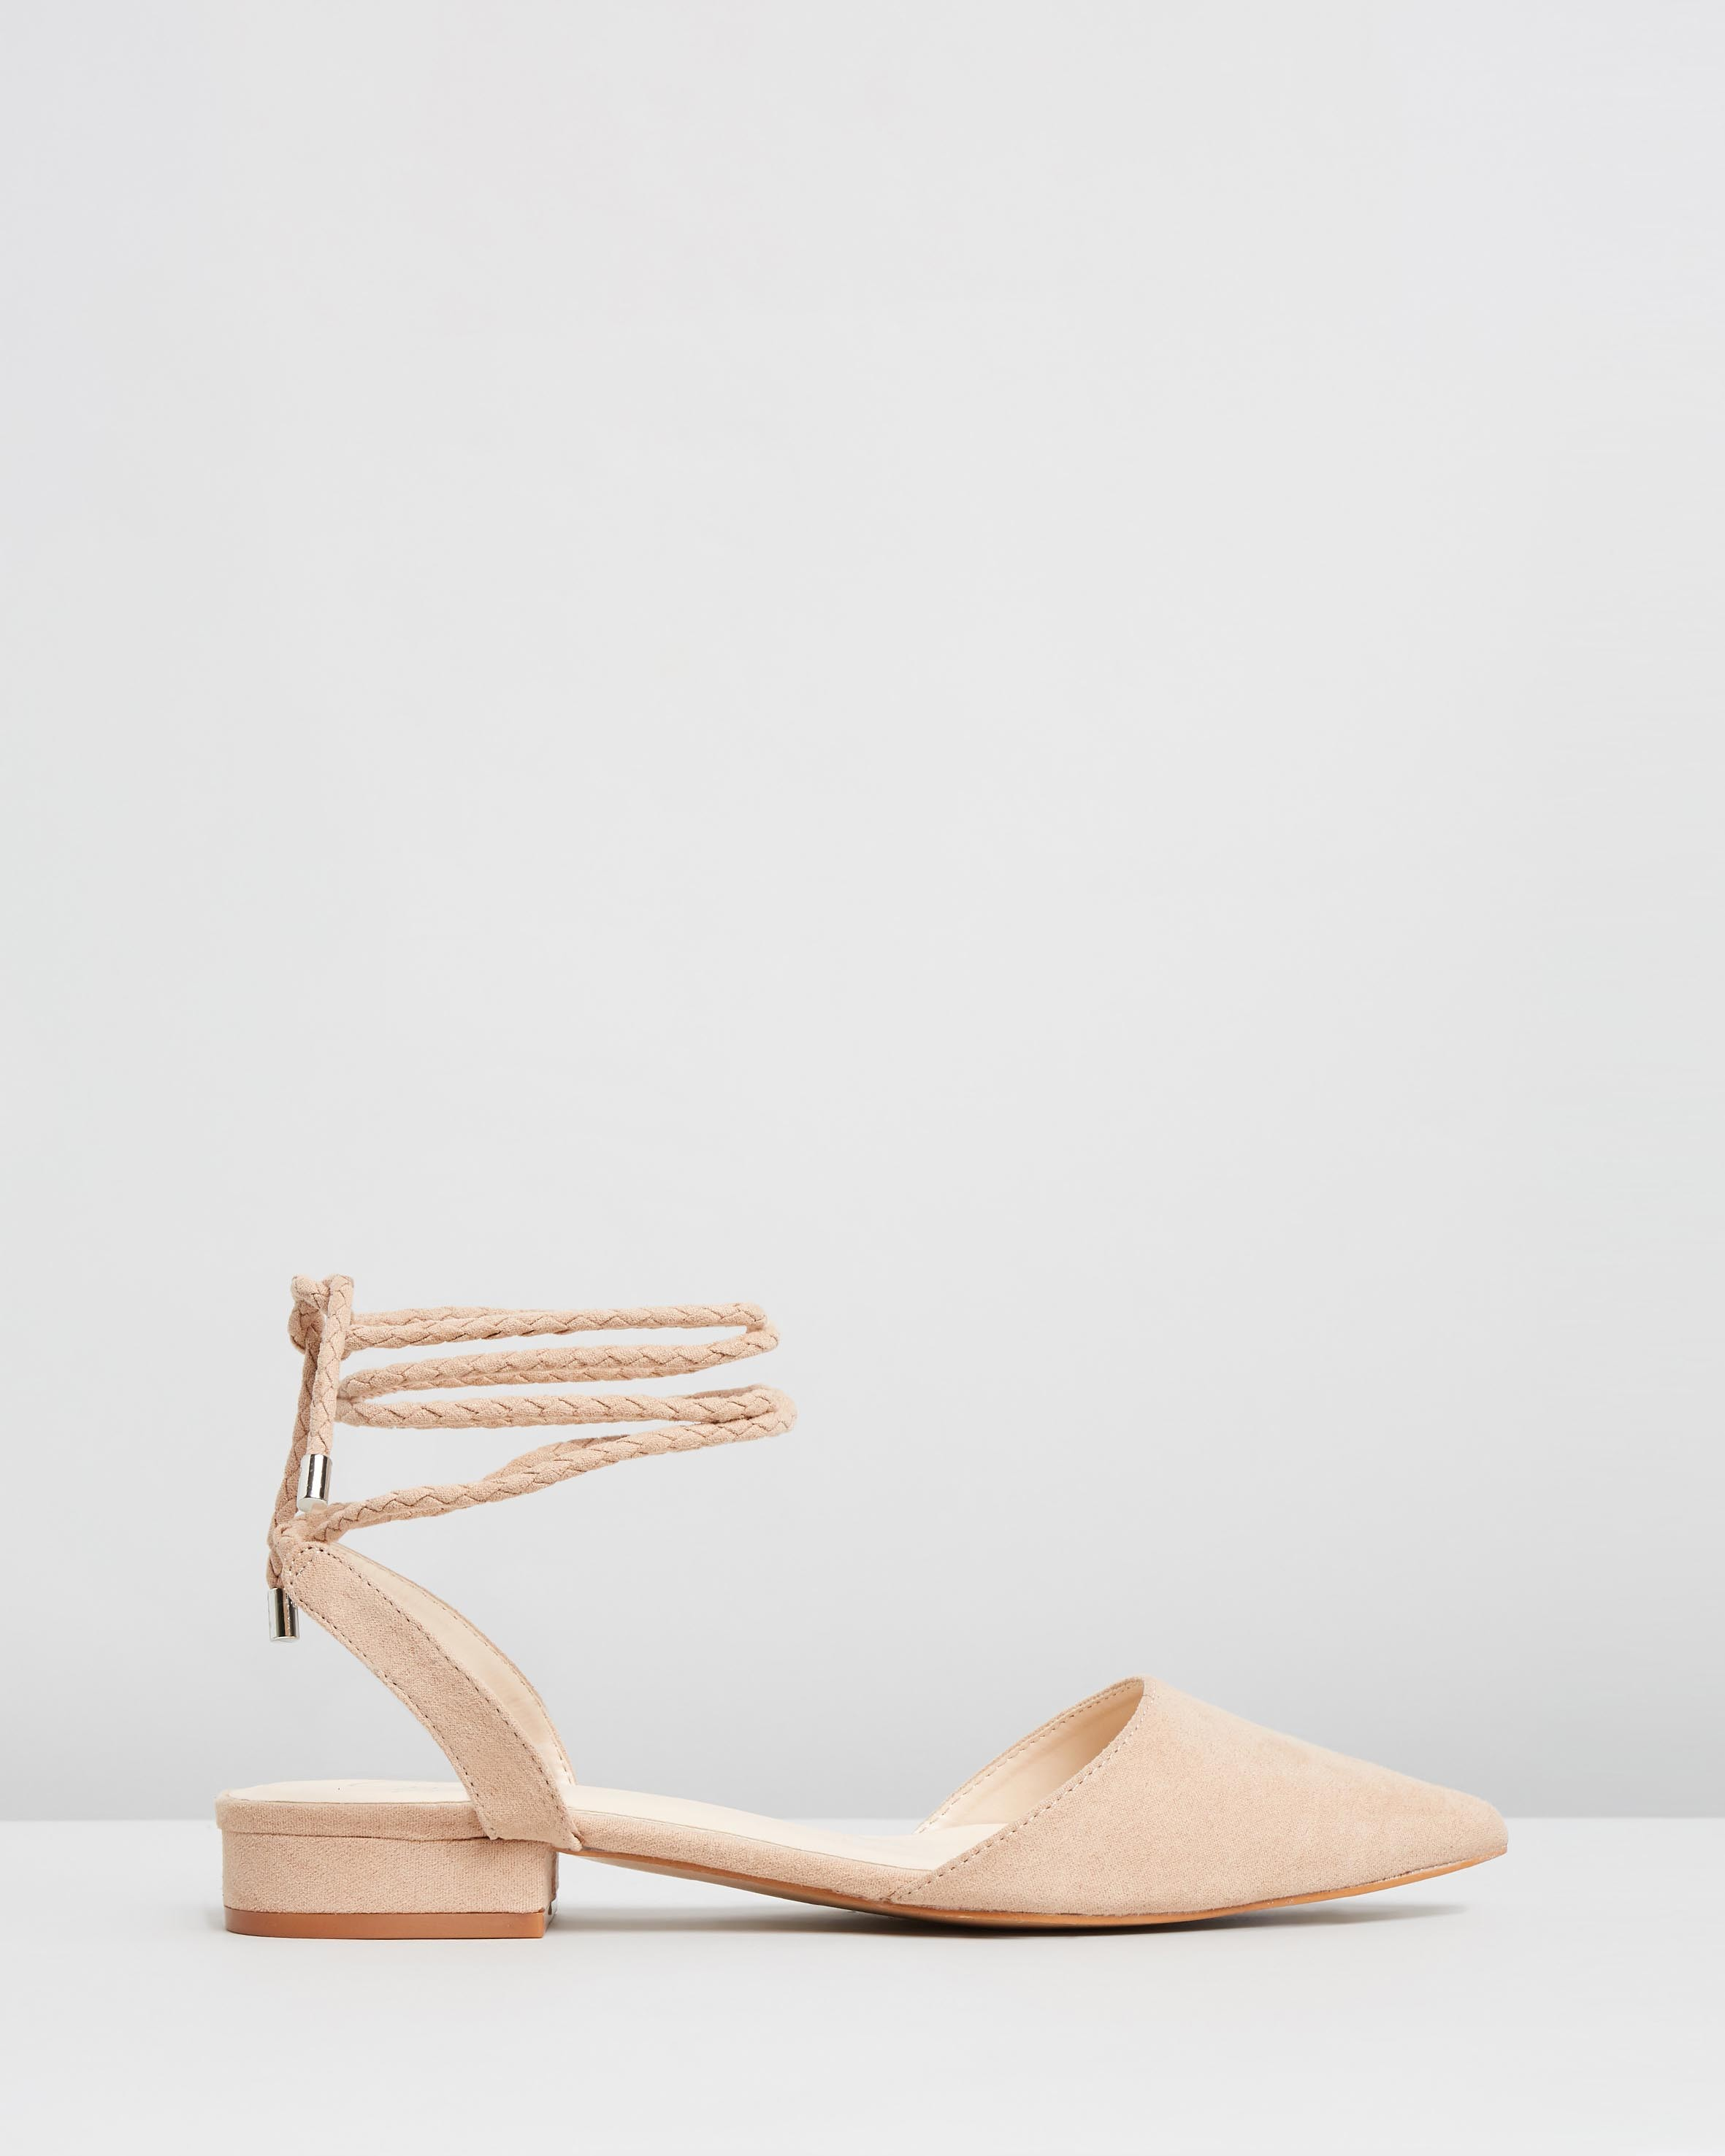 Charles David Womens Latrice Nude MicroSuede Sandals Size